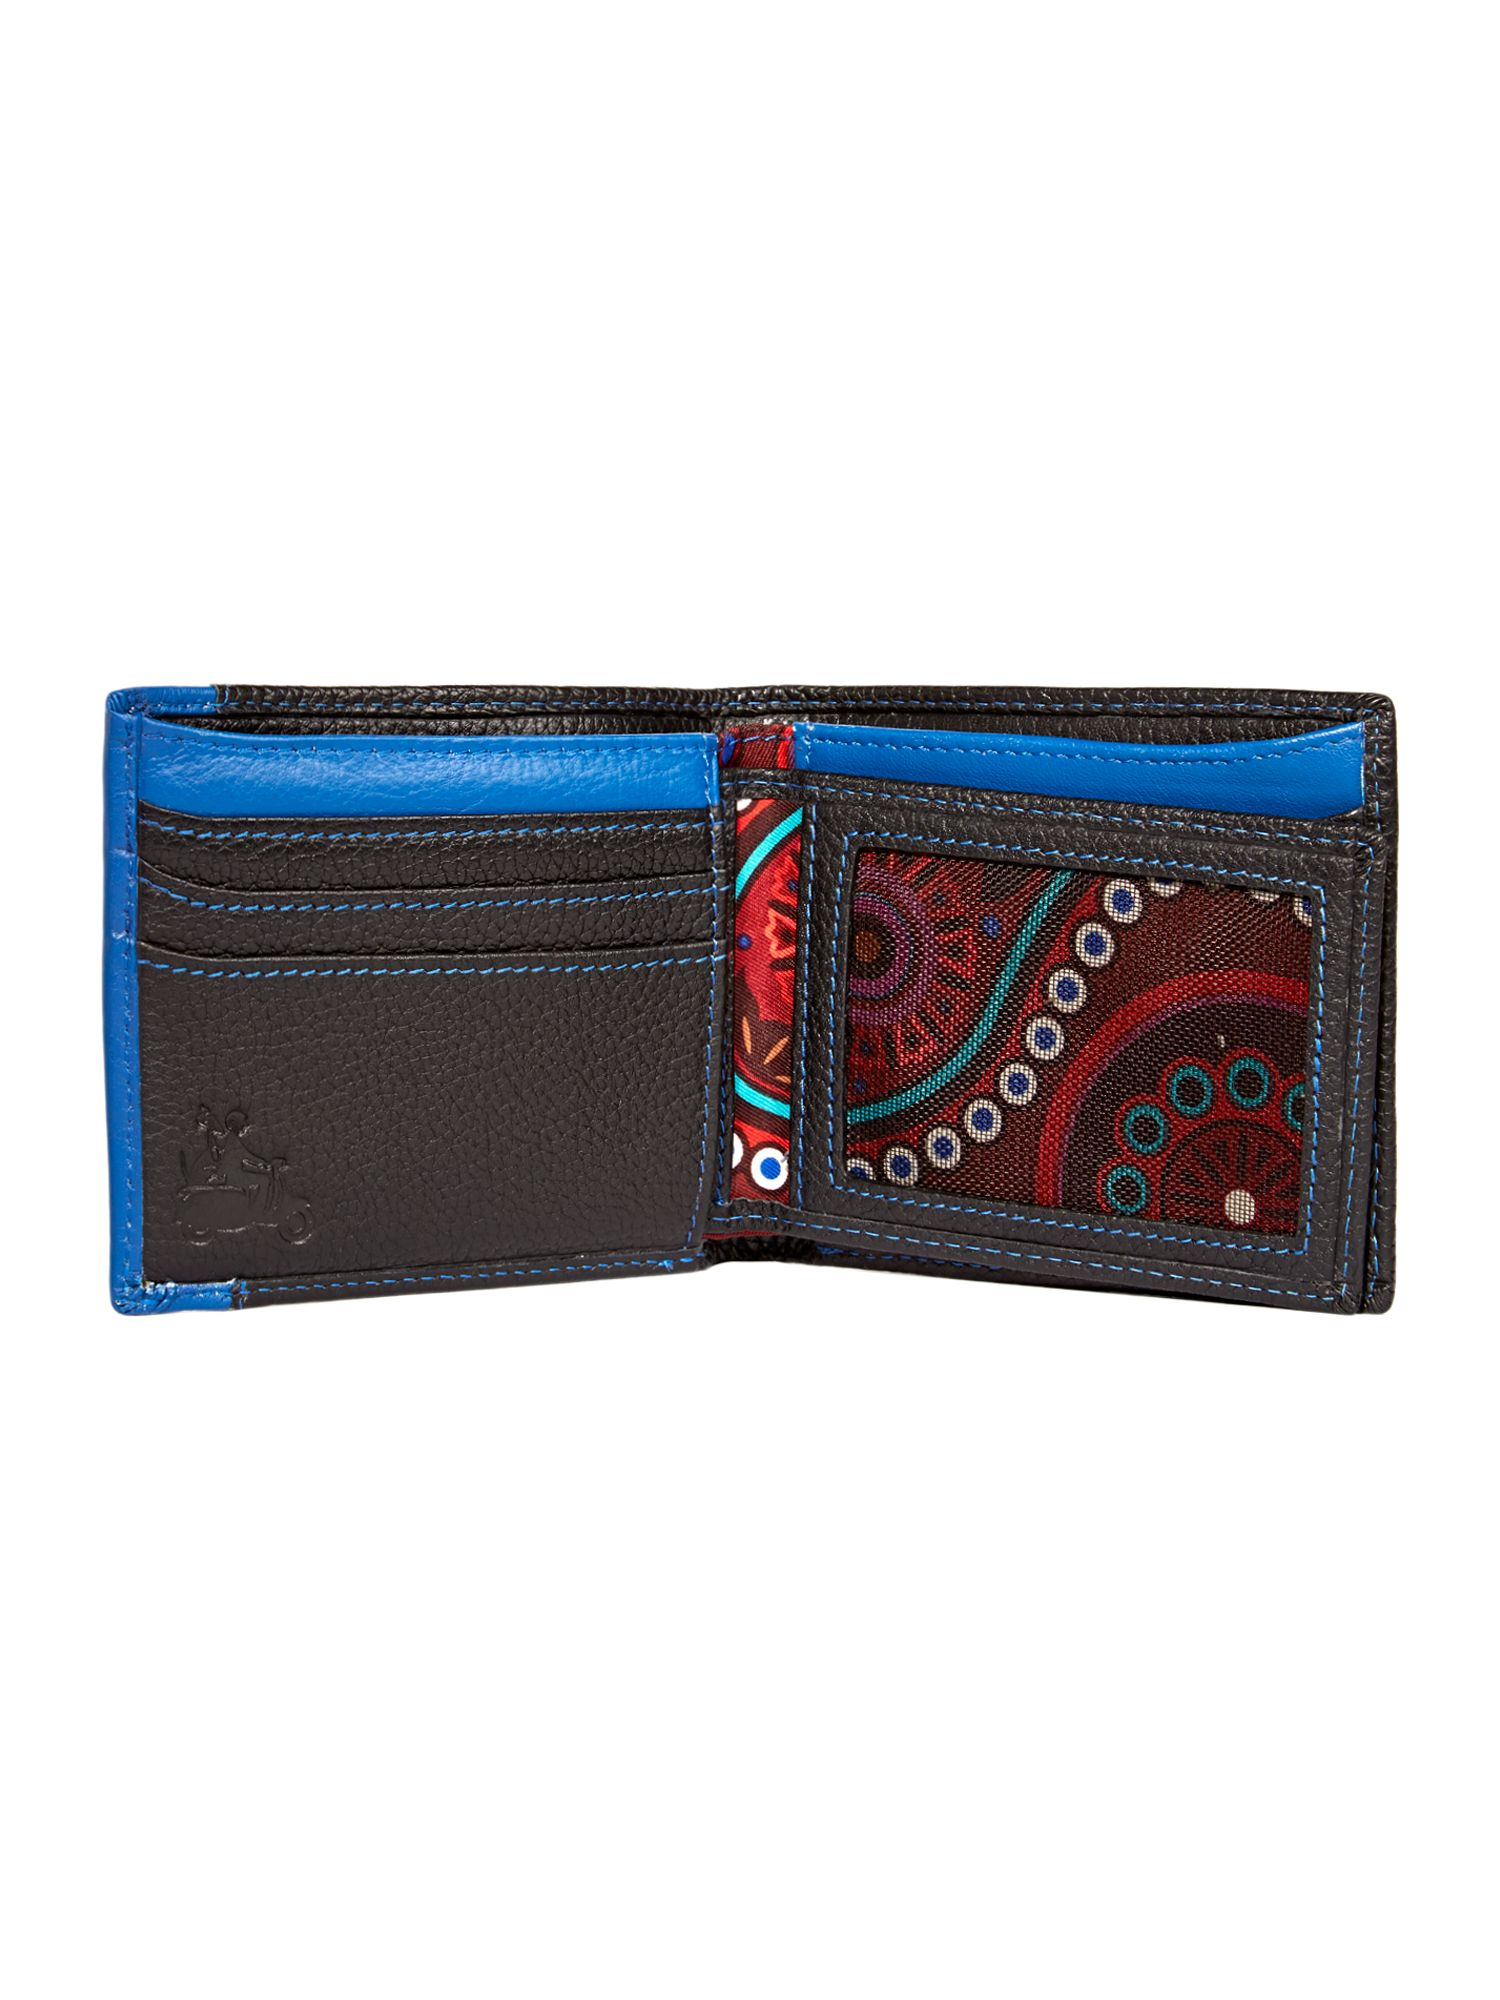 Billfold wallet with credit card holder